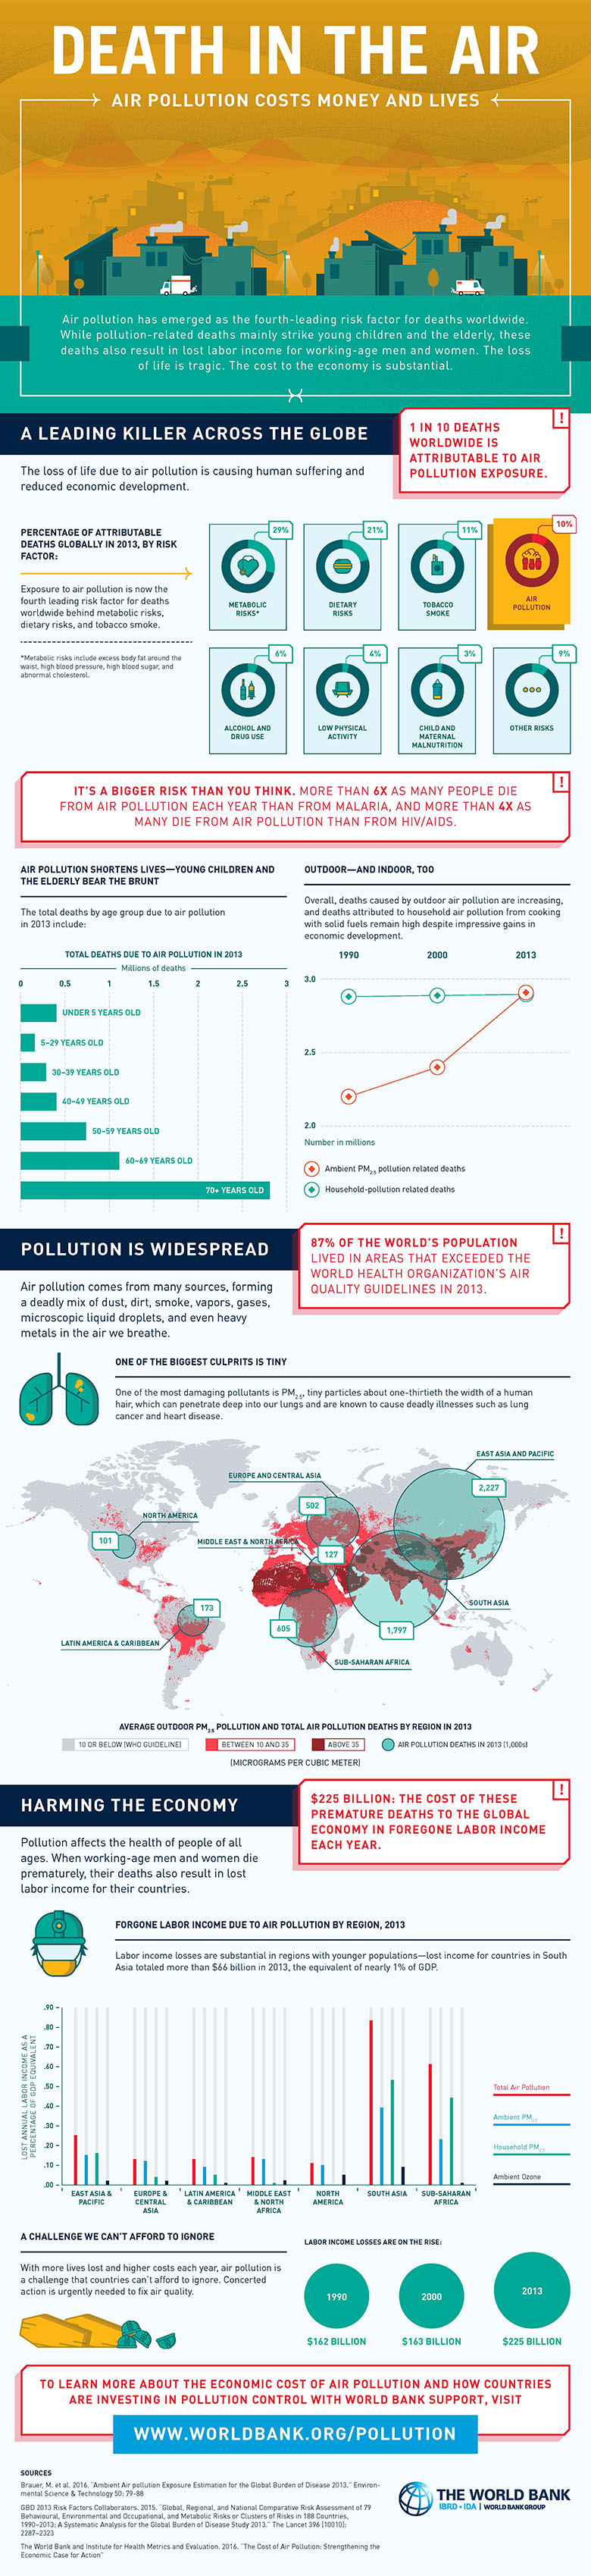 wb_cost-of-pollution-infographic-english_for_web.jpg